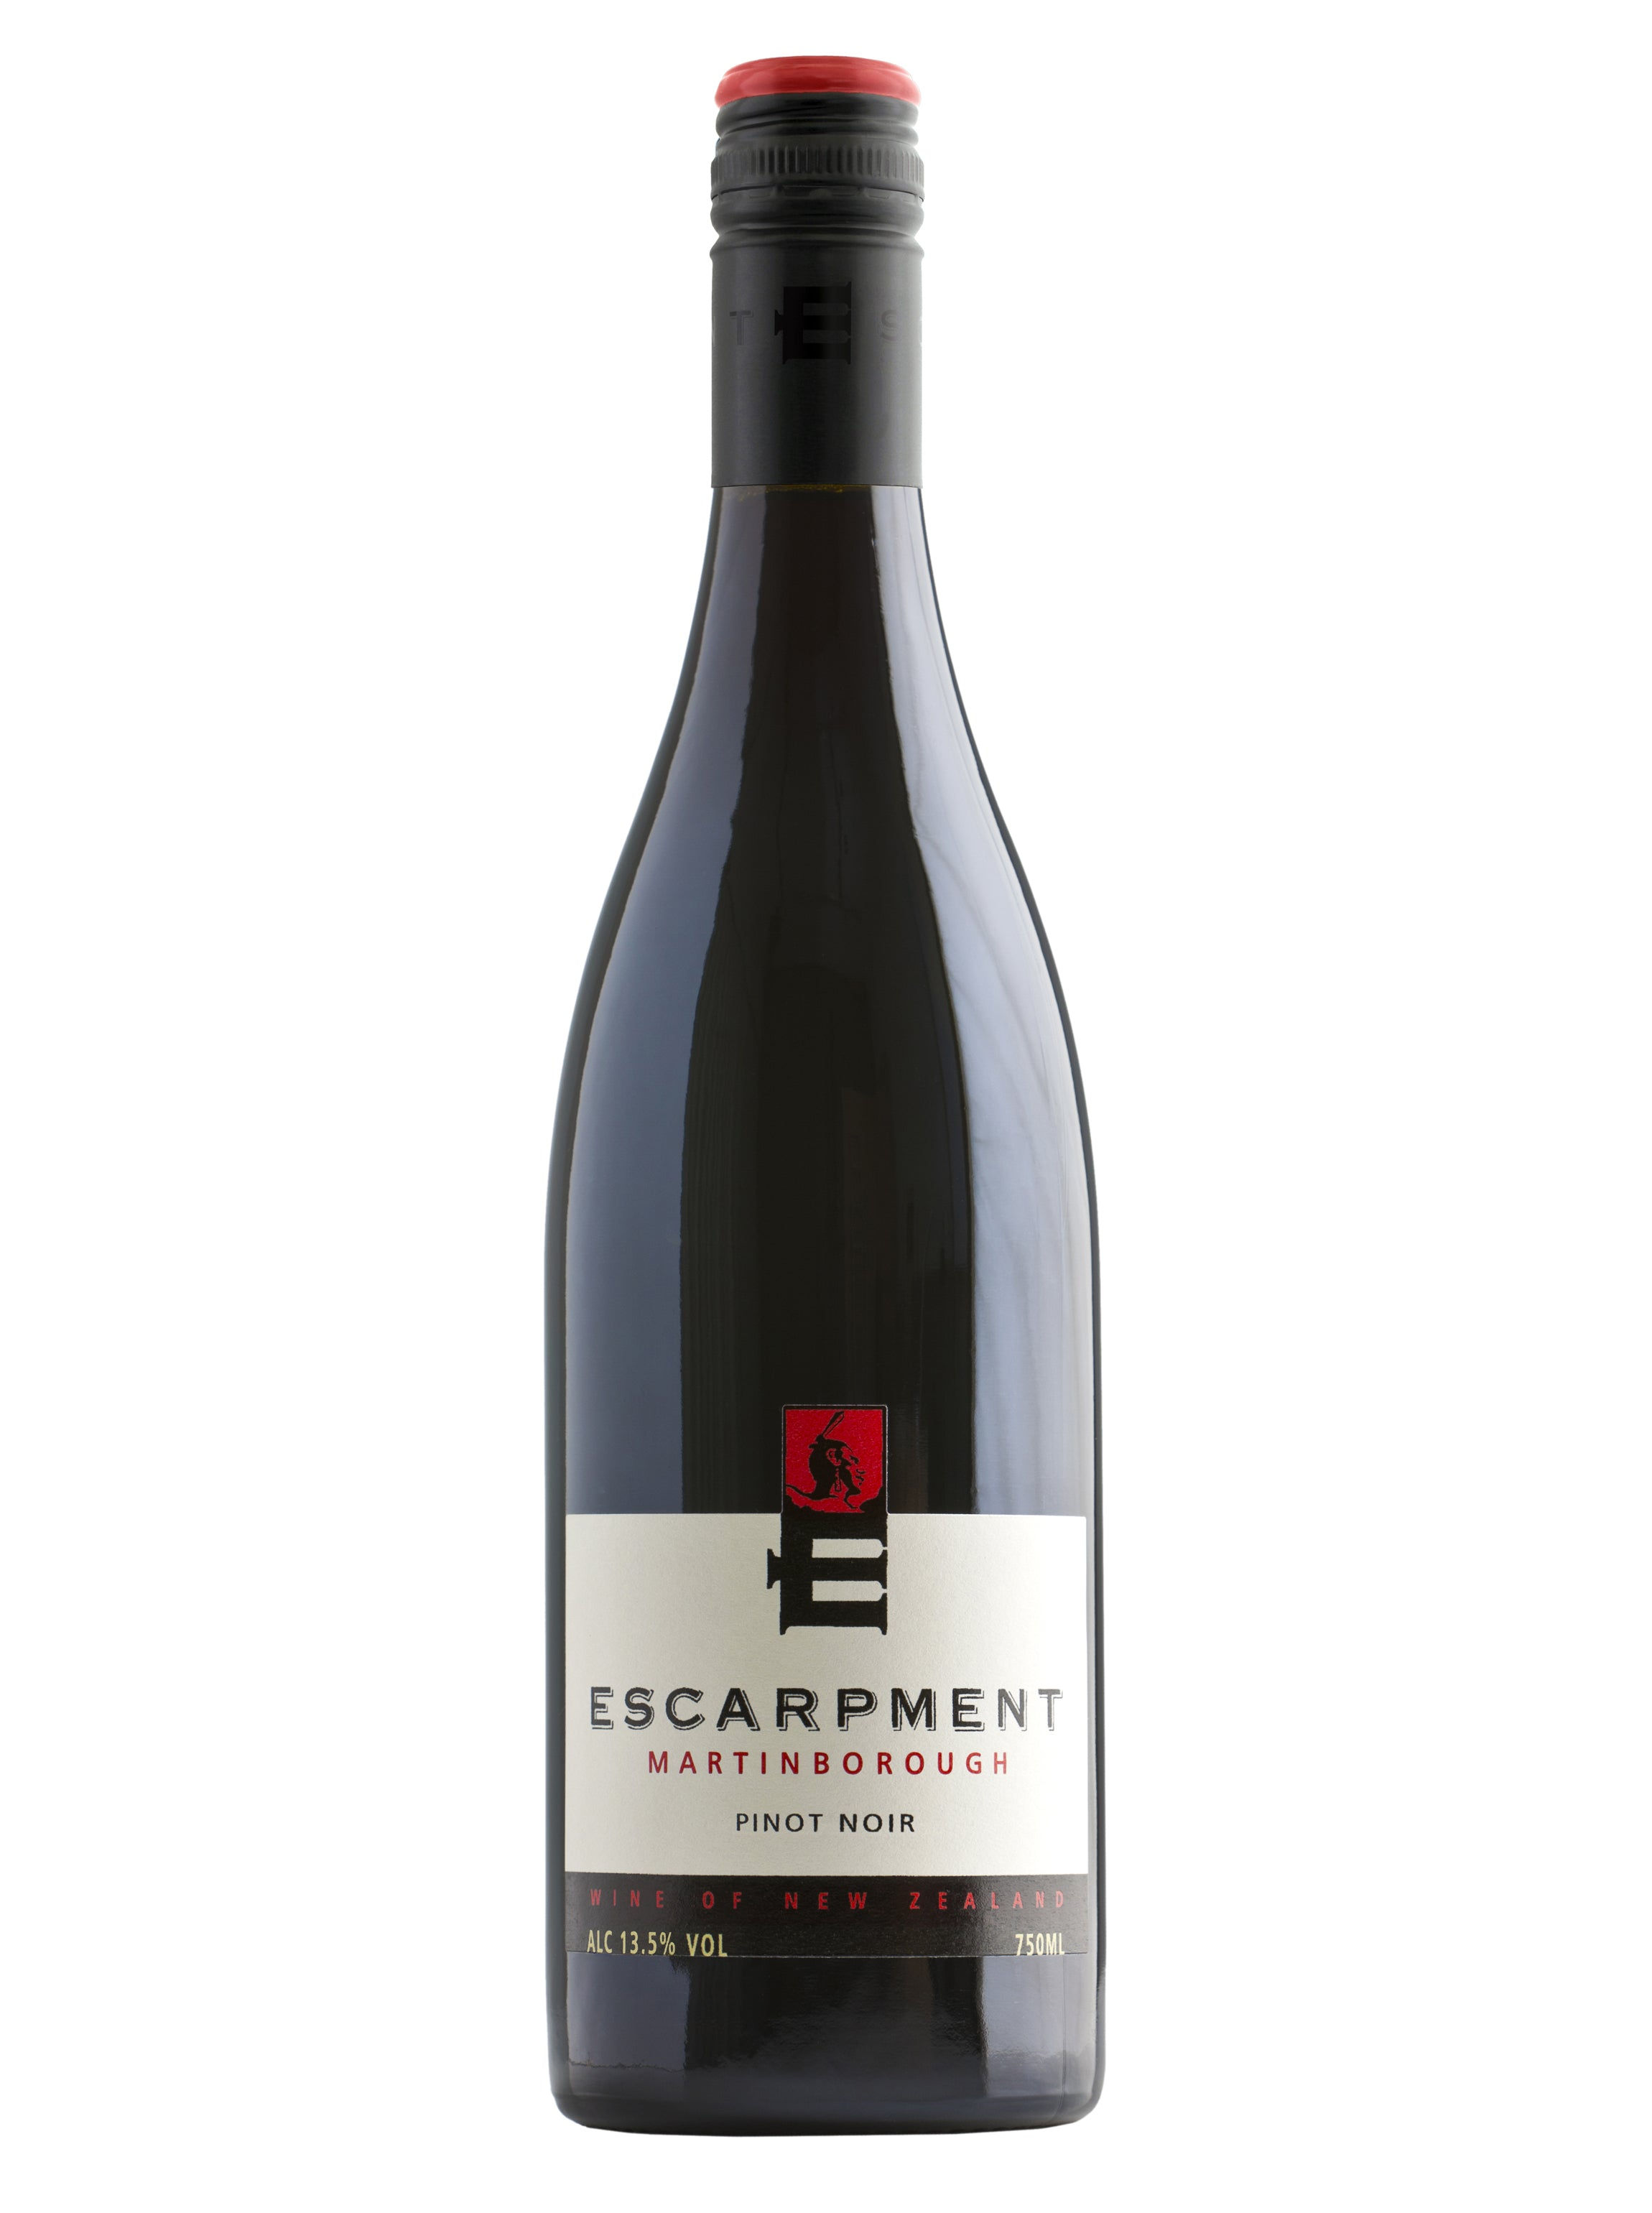 Escarpment Martinborough Pinot Noir 2017